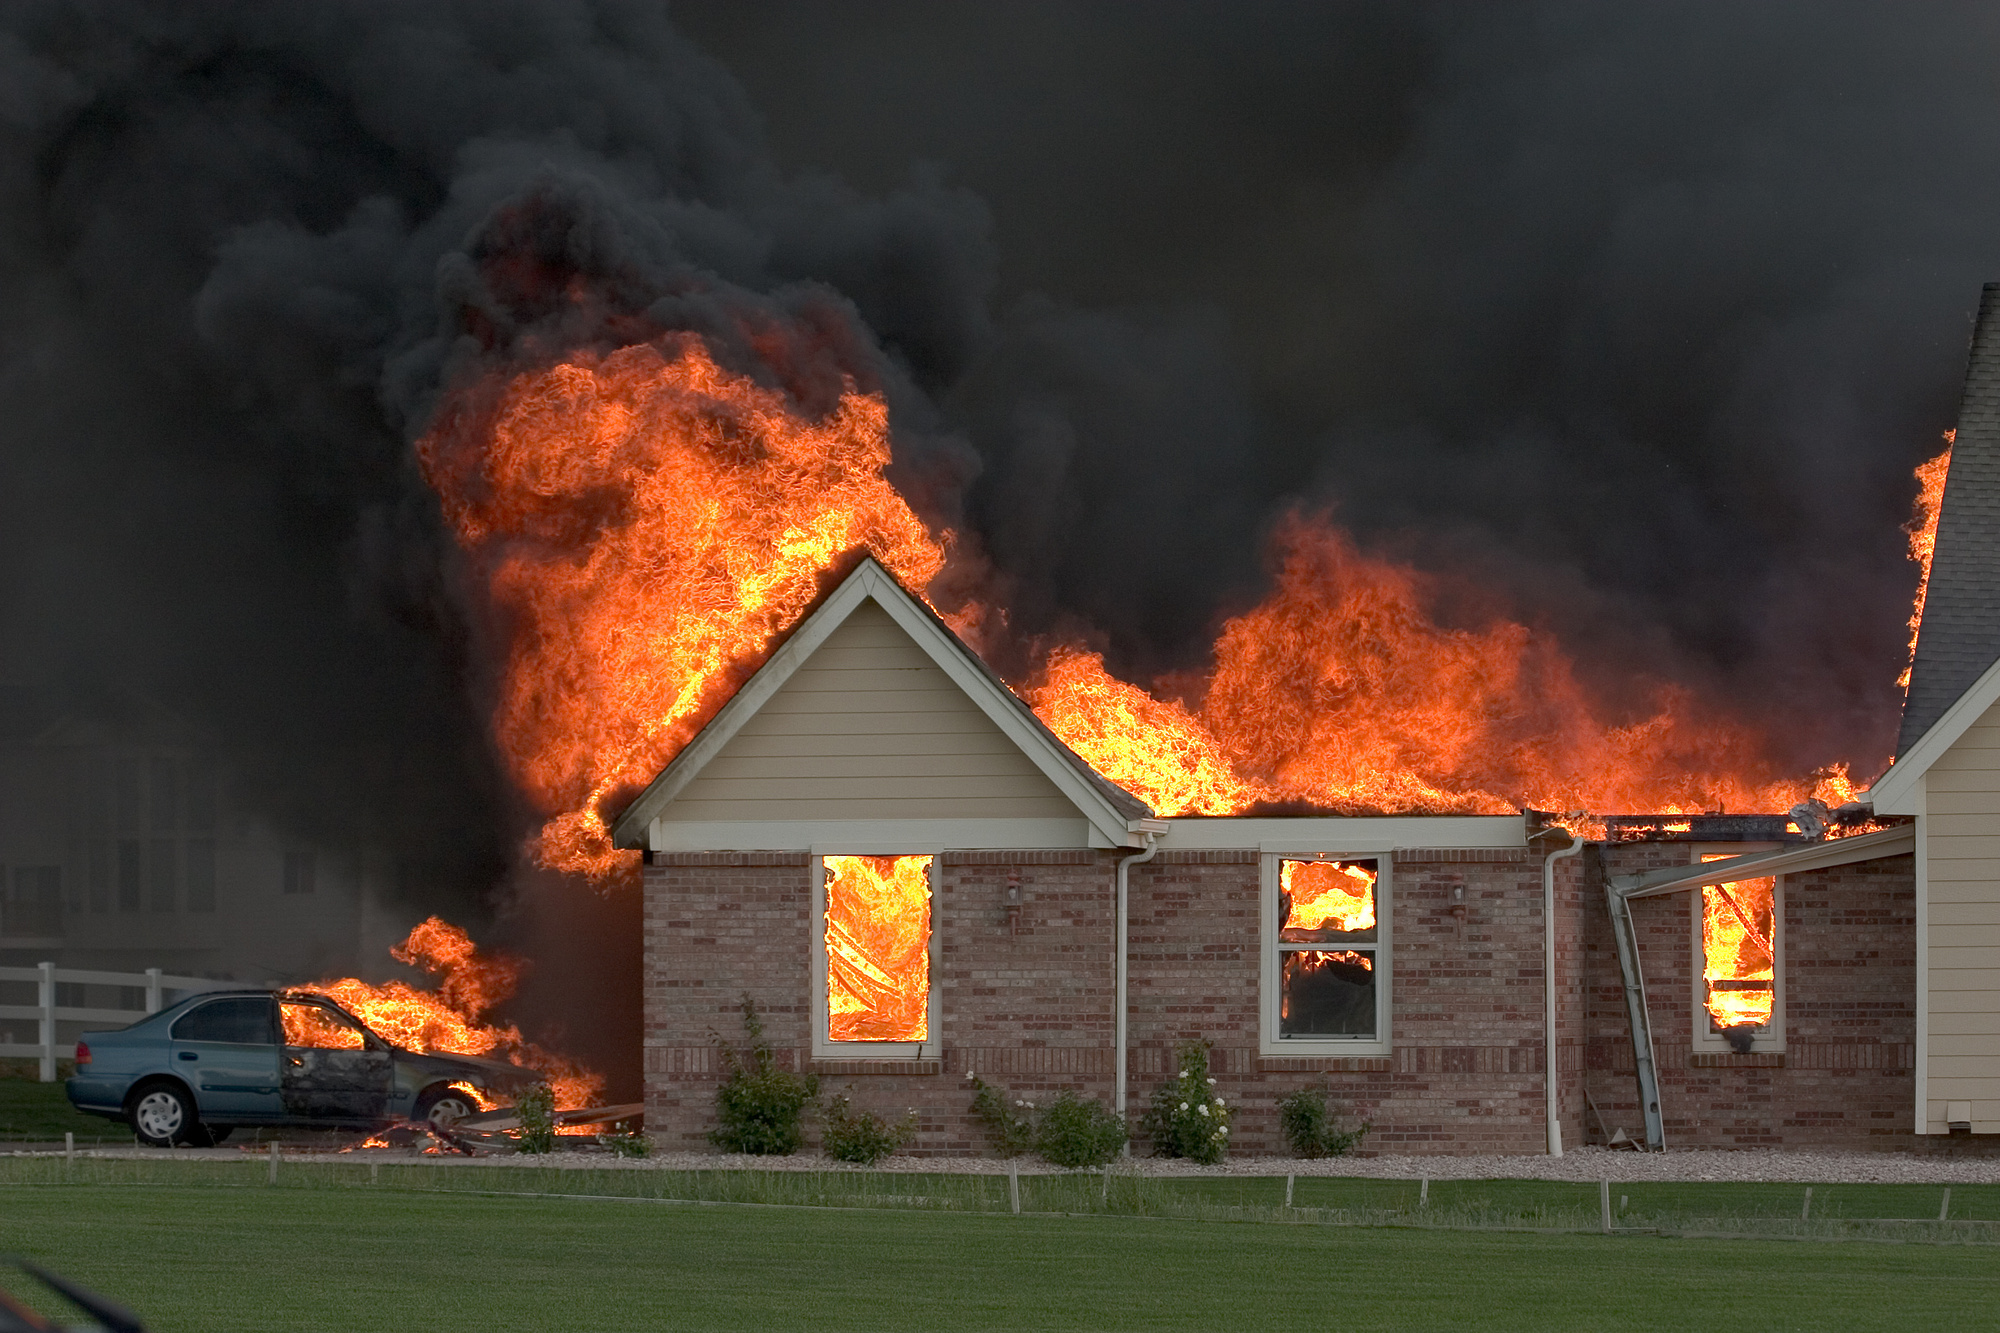 Title: How to Prevent House Fires From Destroying Your Home